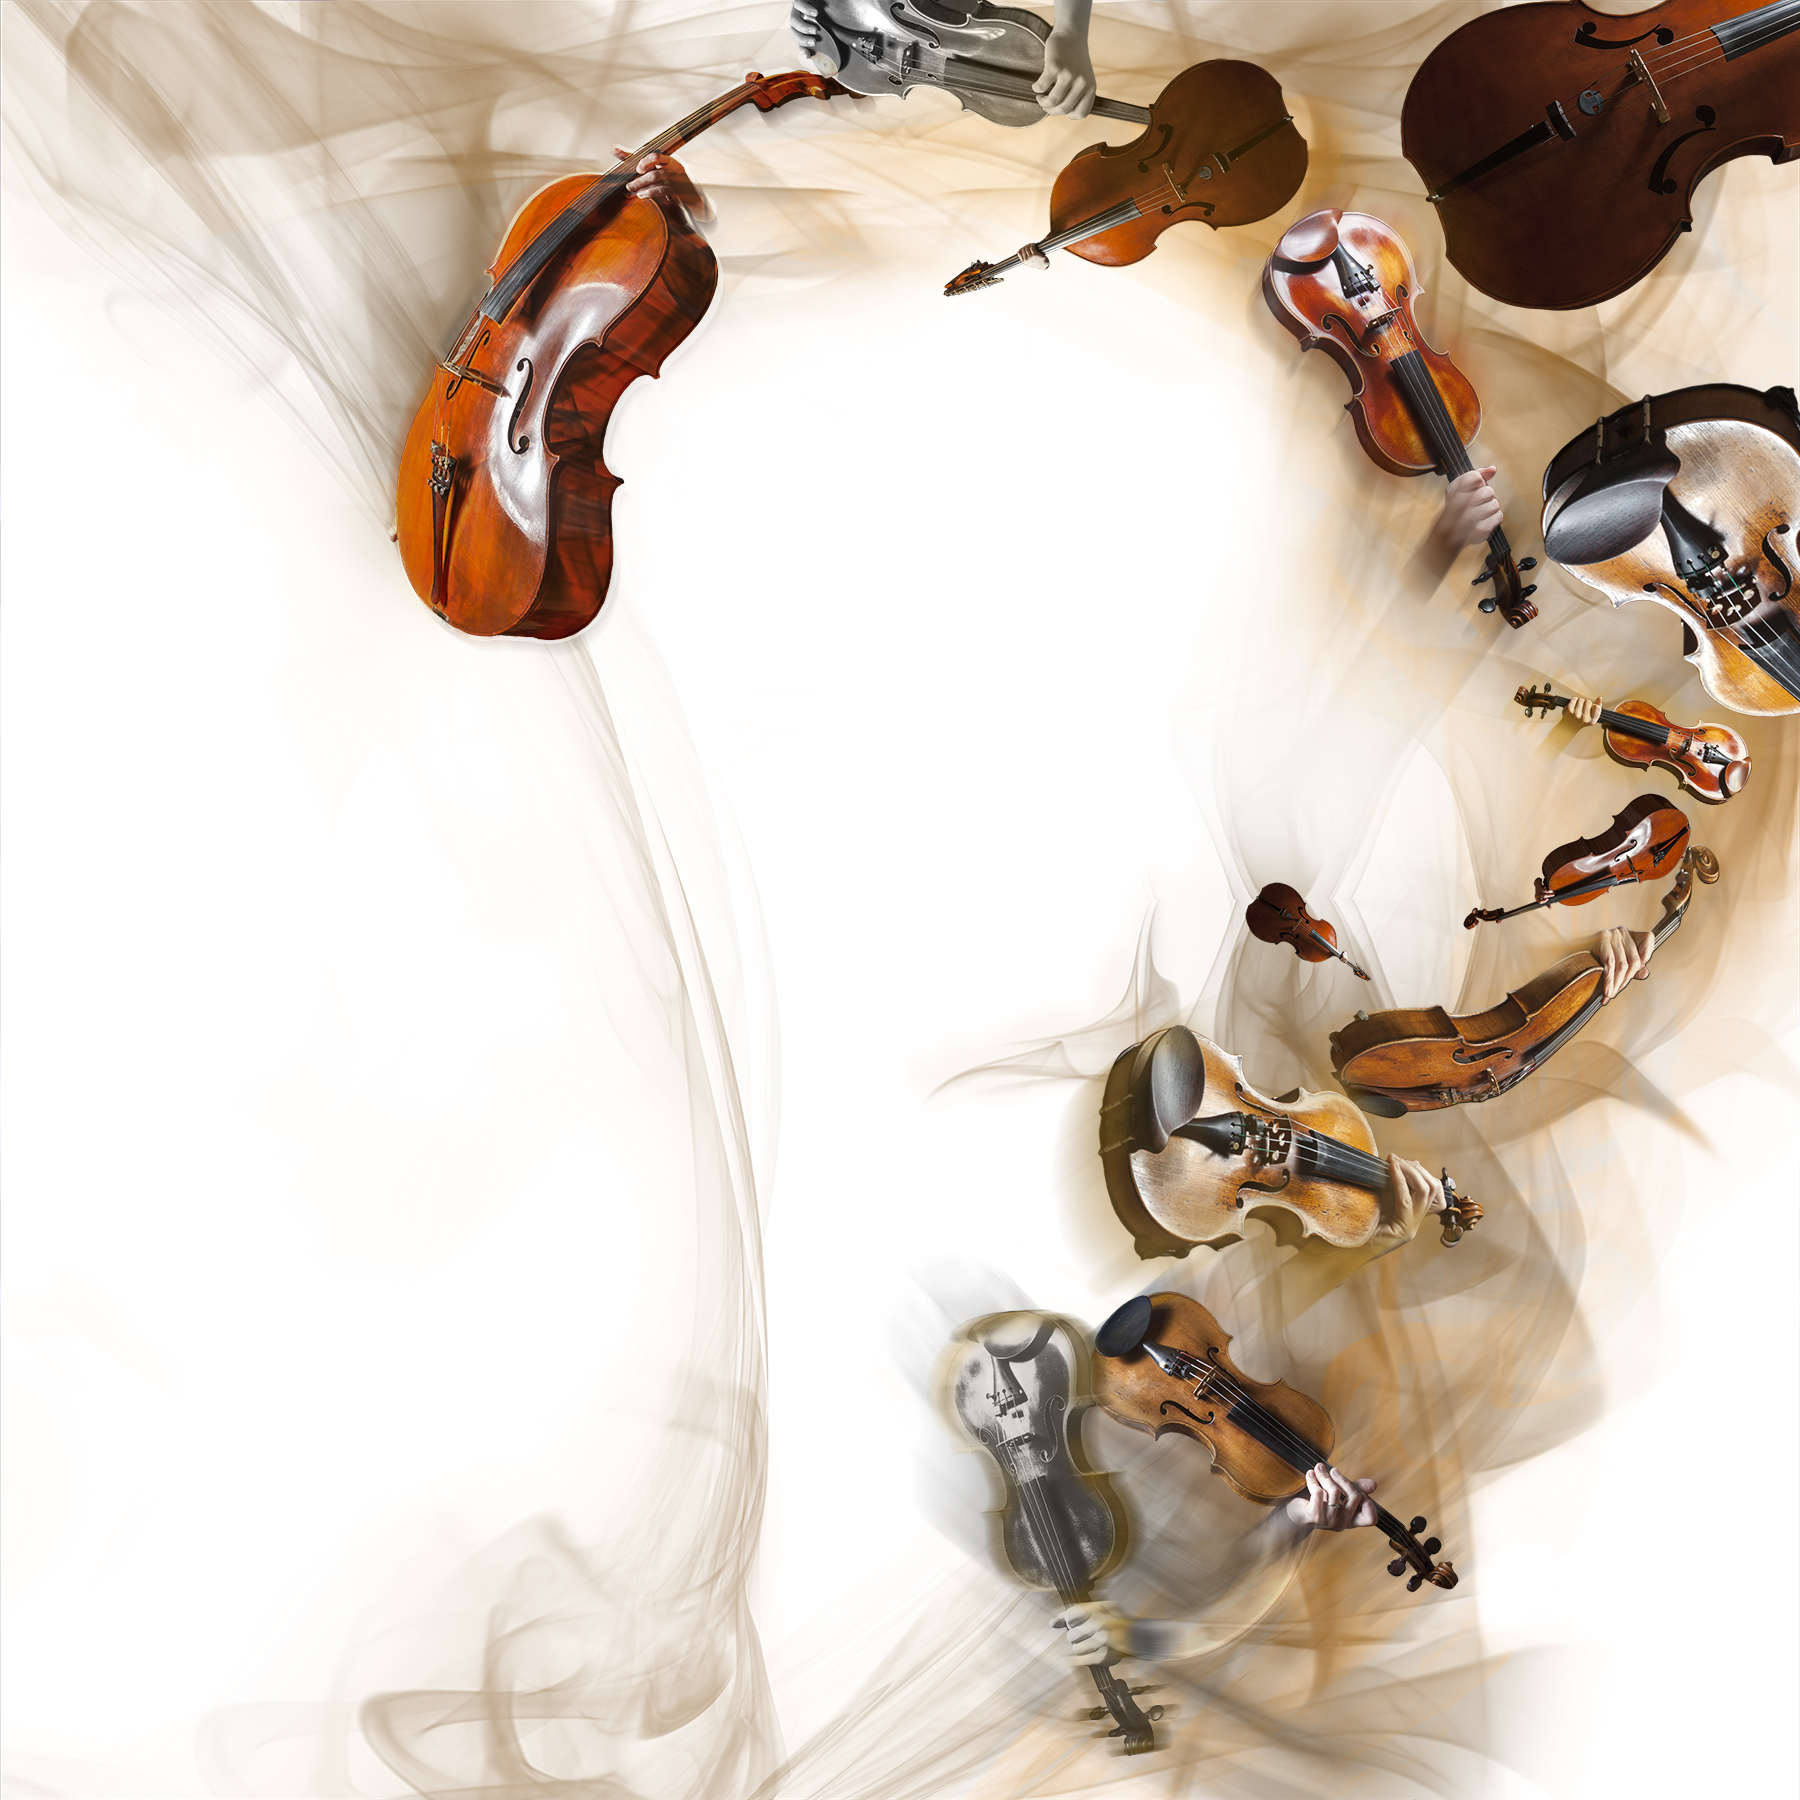 03-montage-violons-montage-4-fond-blanc-hd